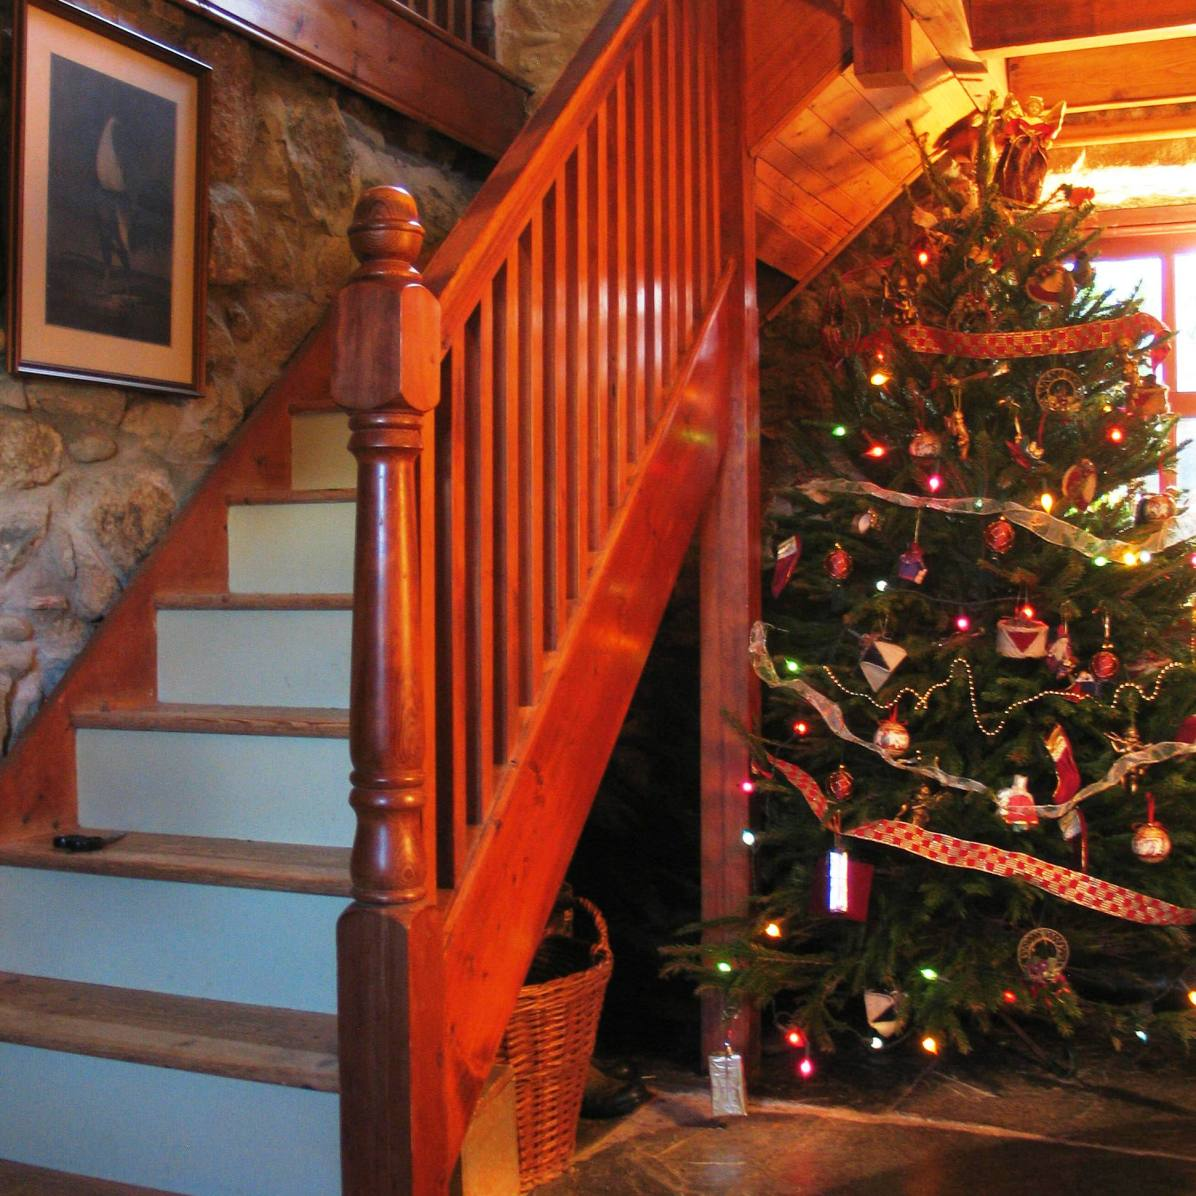 Christmas tree under the stairs